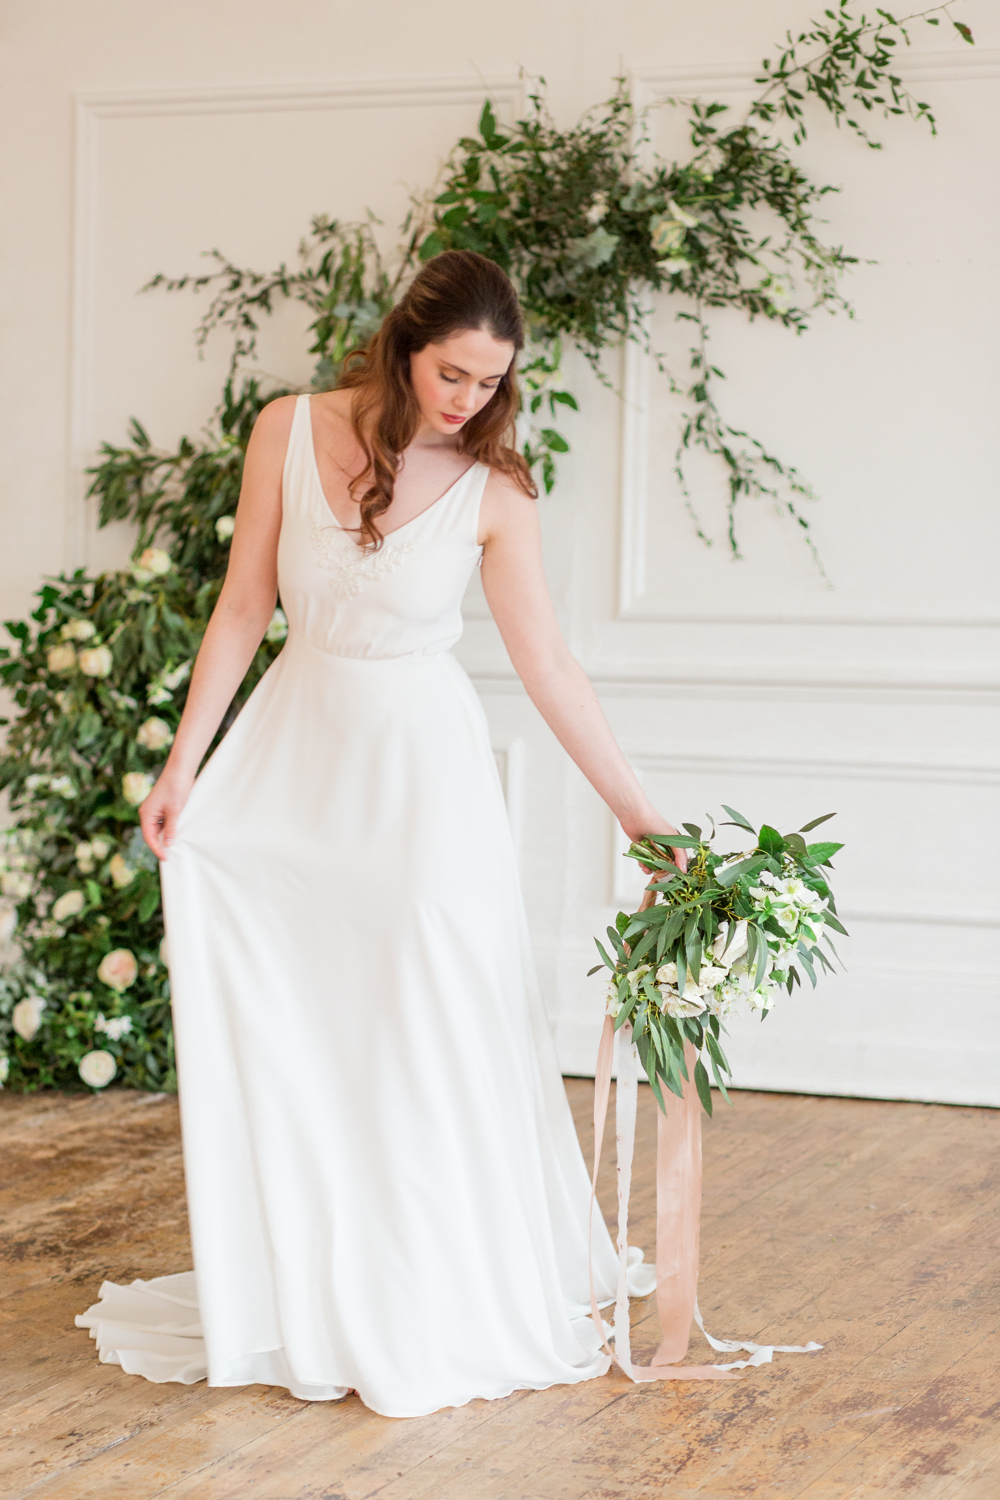 The Timeless Stylist - Beautiful Bridal Inspiration